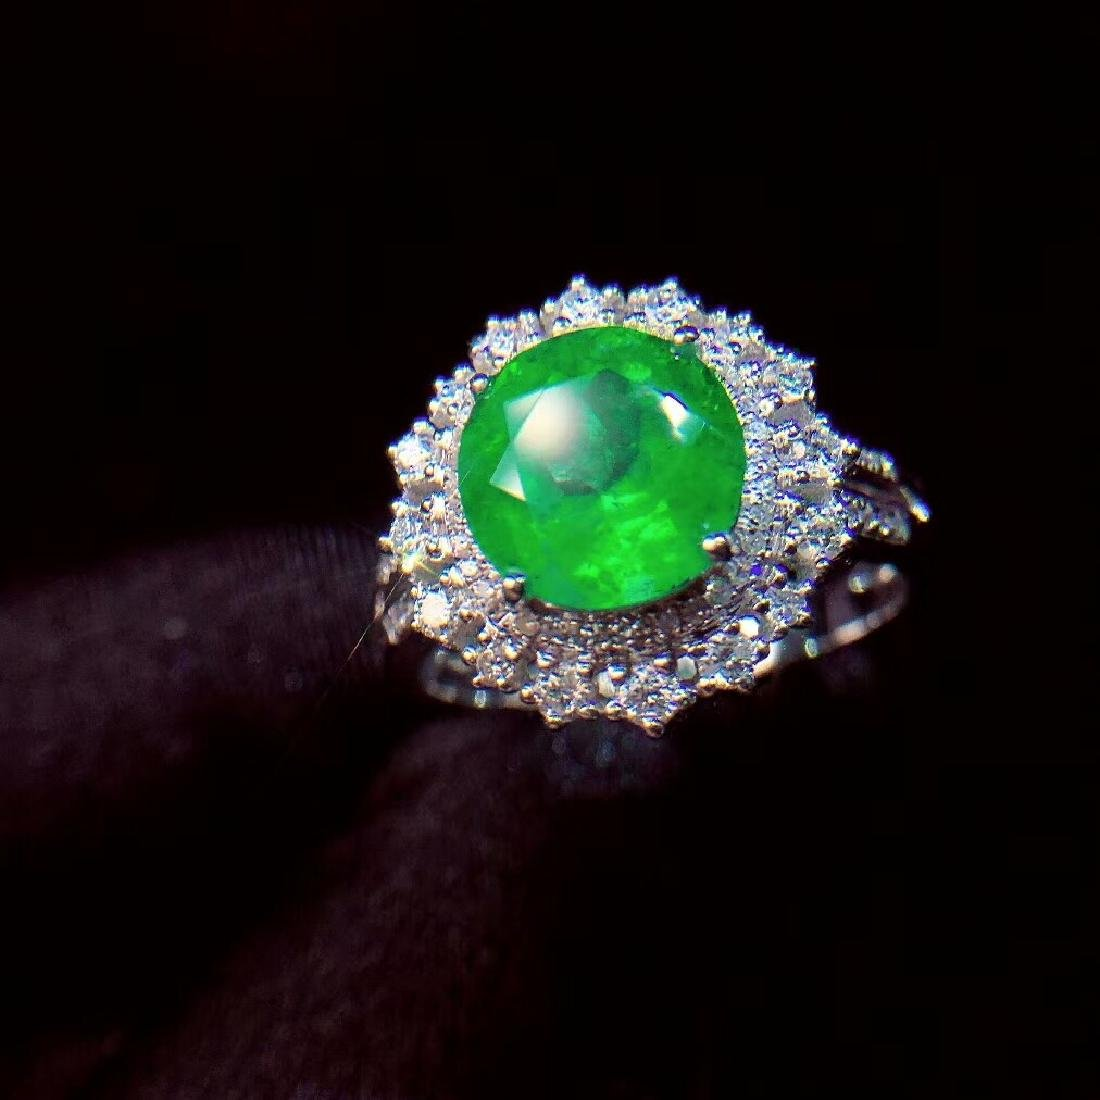 2.27ct Emerald Ring in 18kt white Gold